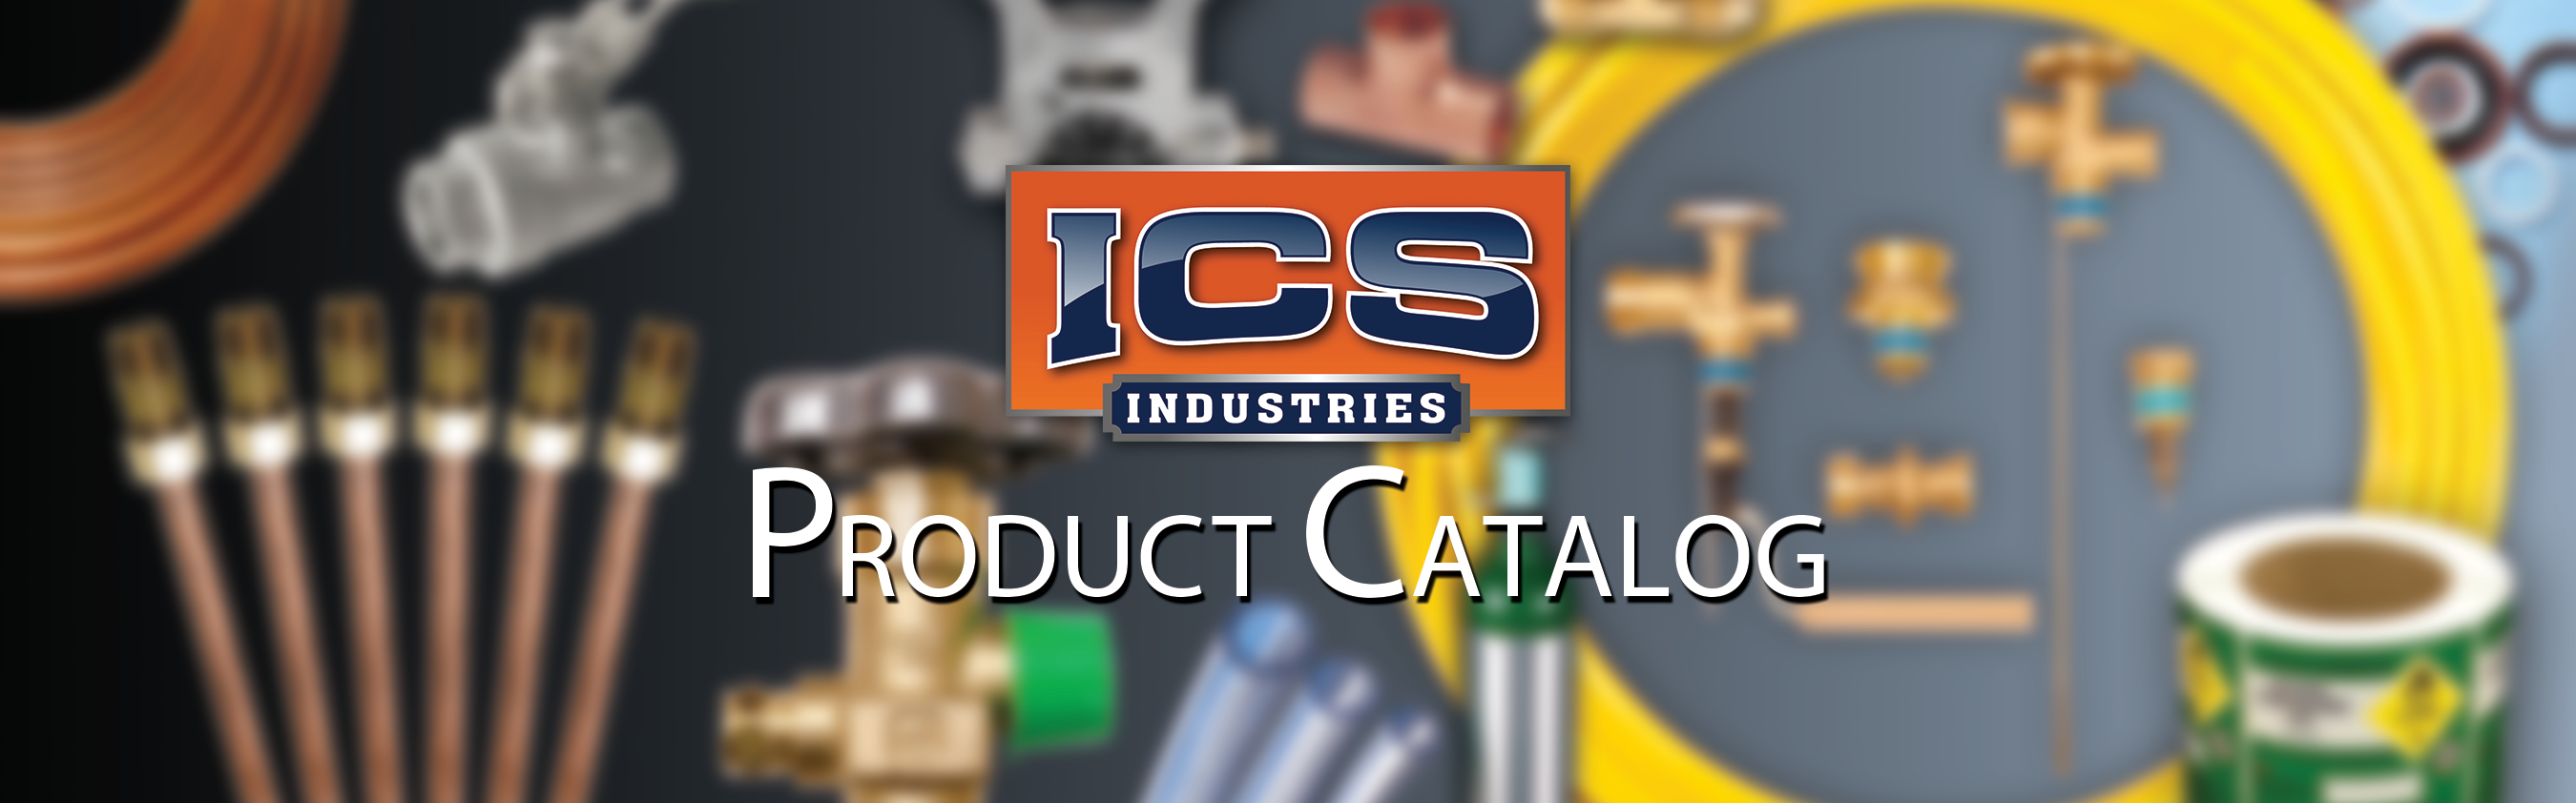 ICS CATALOG IMAGE